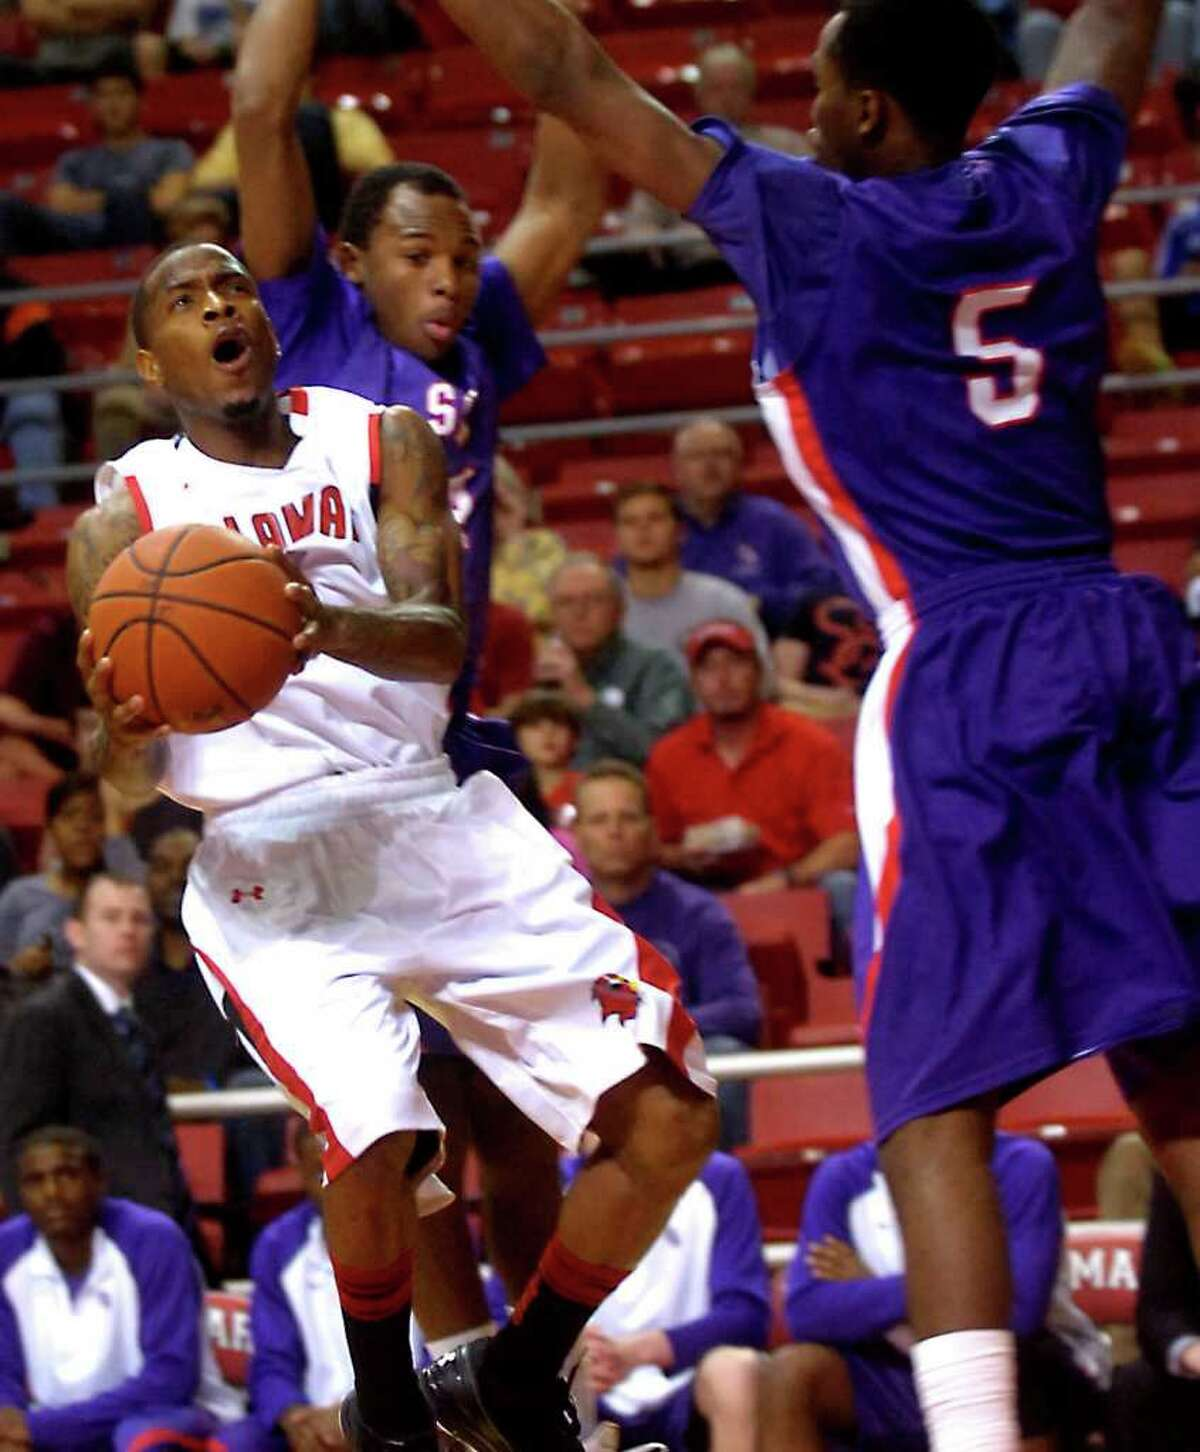 Lamar's Anthony Miles looks to shoot while a under pressure from Stephen F. Austin's Darius Gardner and Hal Bateman at Lamar University in Beaumont, Wednesday, February 22, 2012. Tammy McKinley/The Enterprise